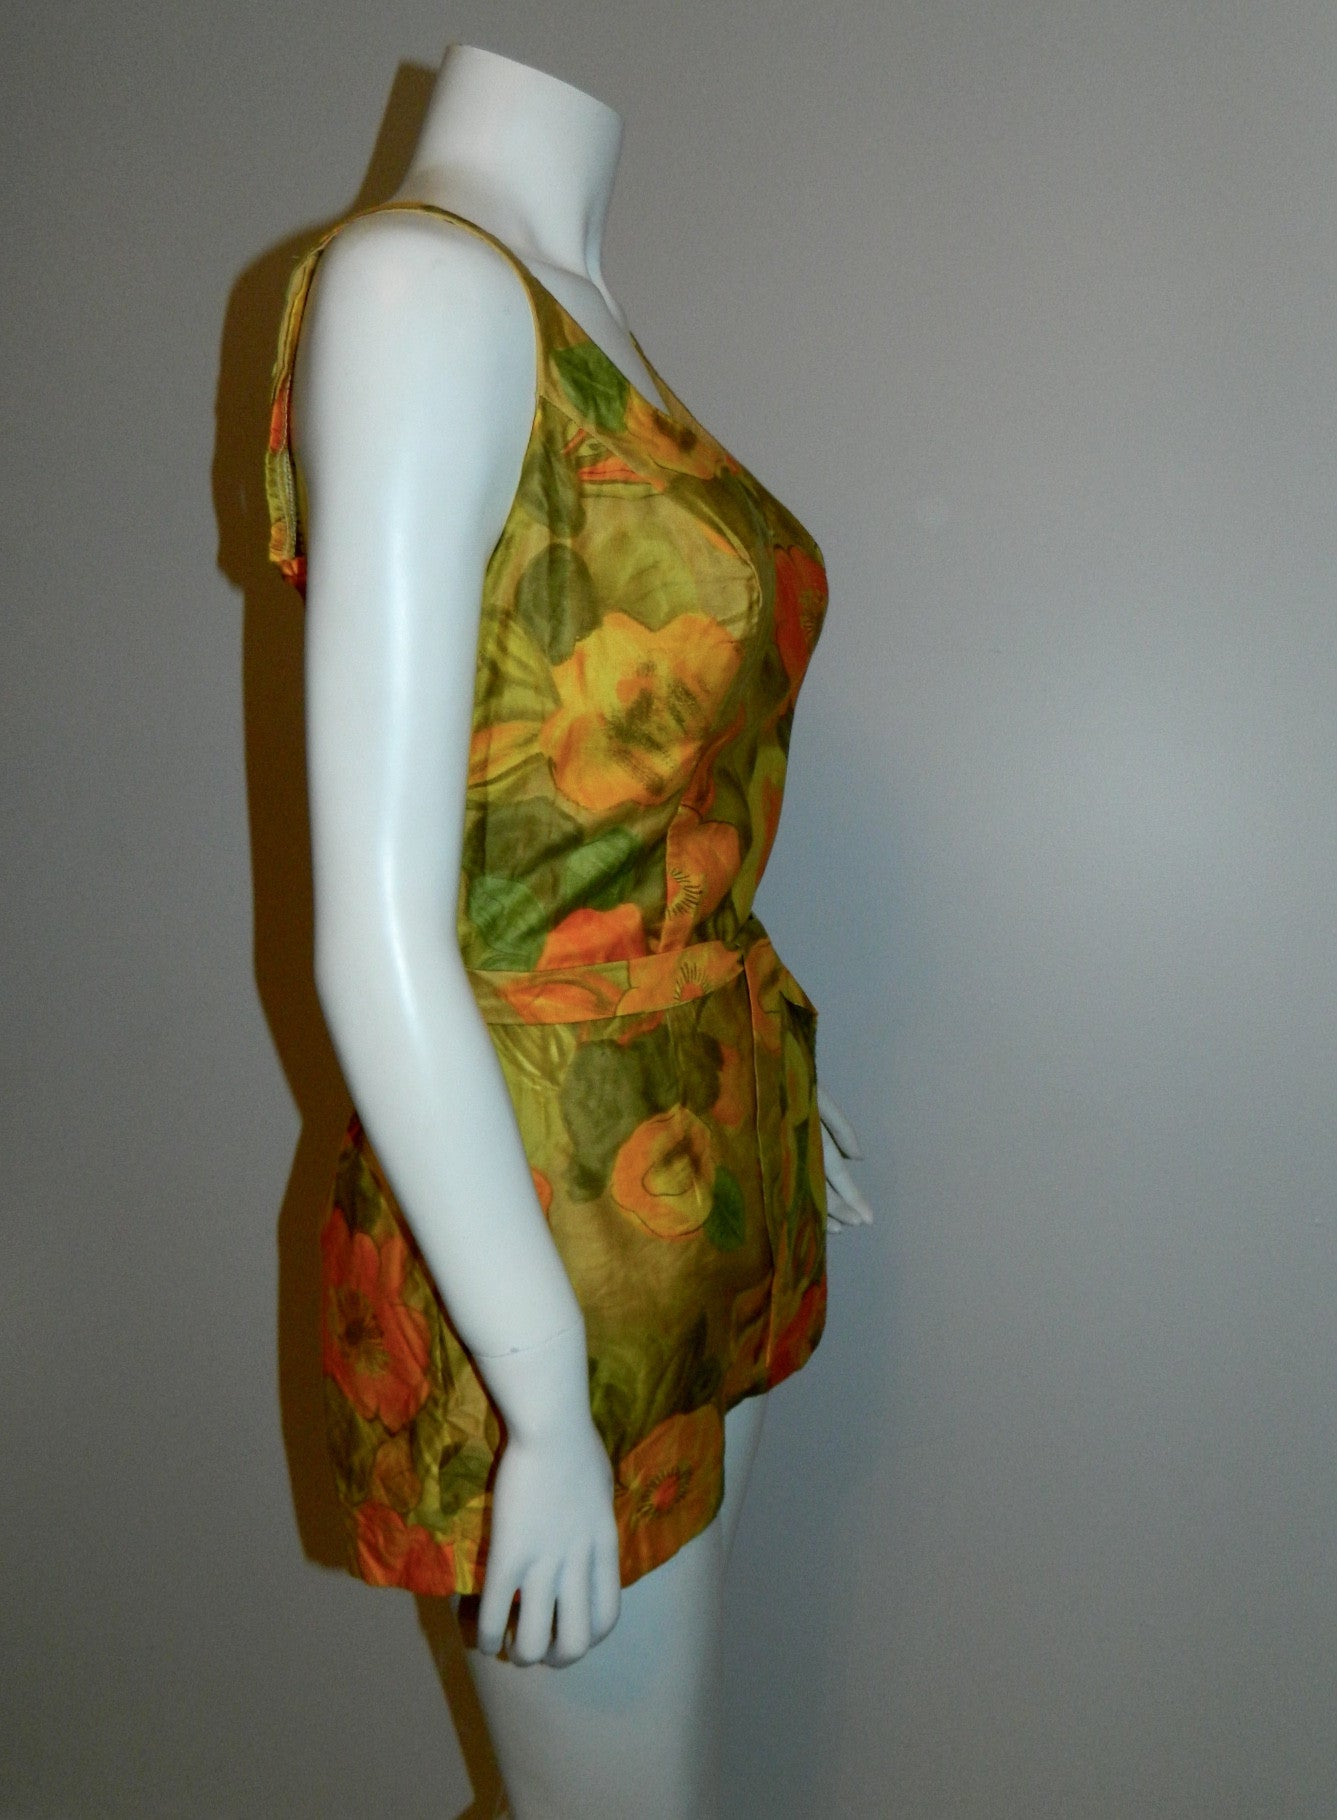 vintage 1960s floral ROMPER swimsuit / Sea Stars Sears bathing suit playsuit New With Tags 38